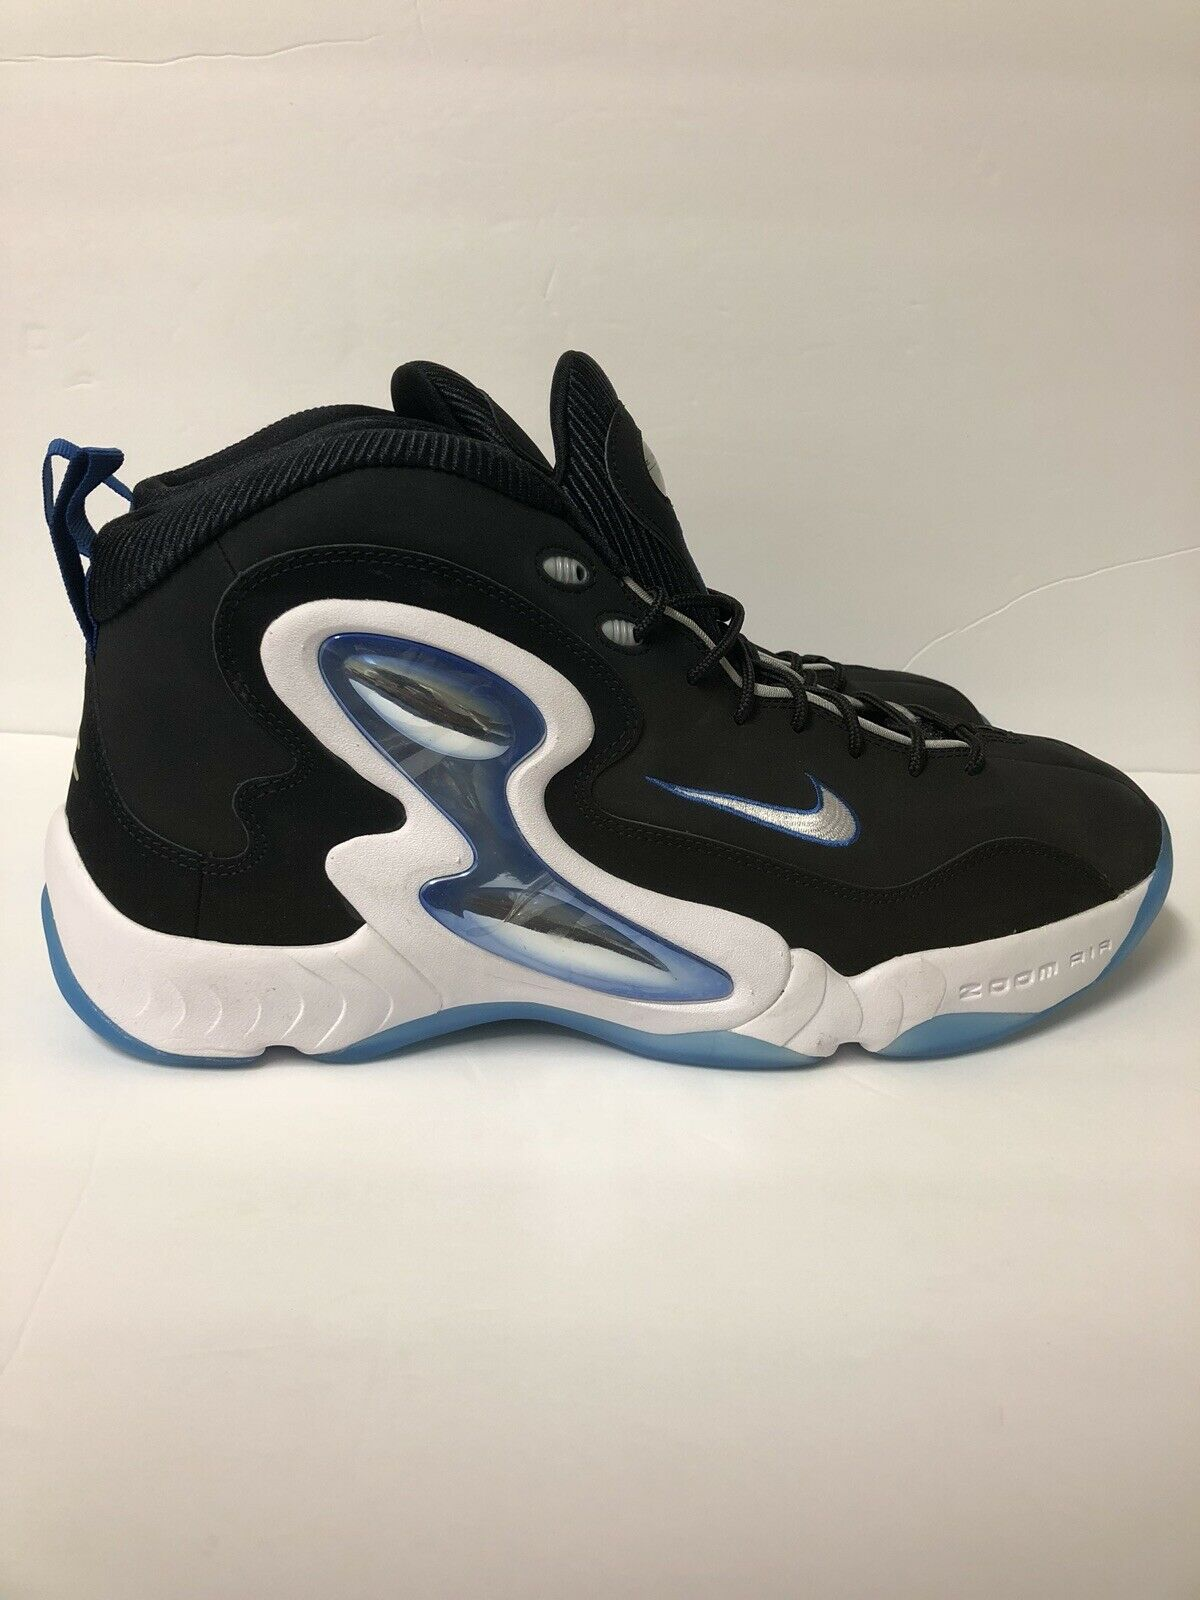 NIKE ZOOM HAWK FLIGHT CLASS OF 97 PACK PENNY BLACK WHITE ROYAL blueE 805272-001